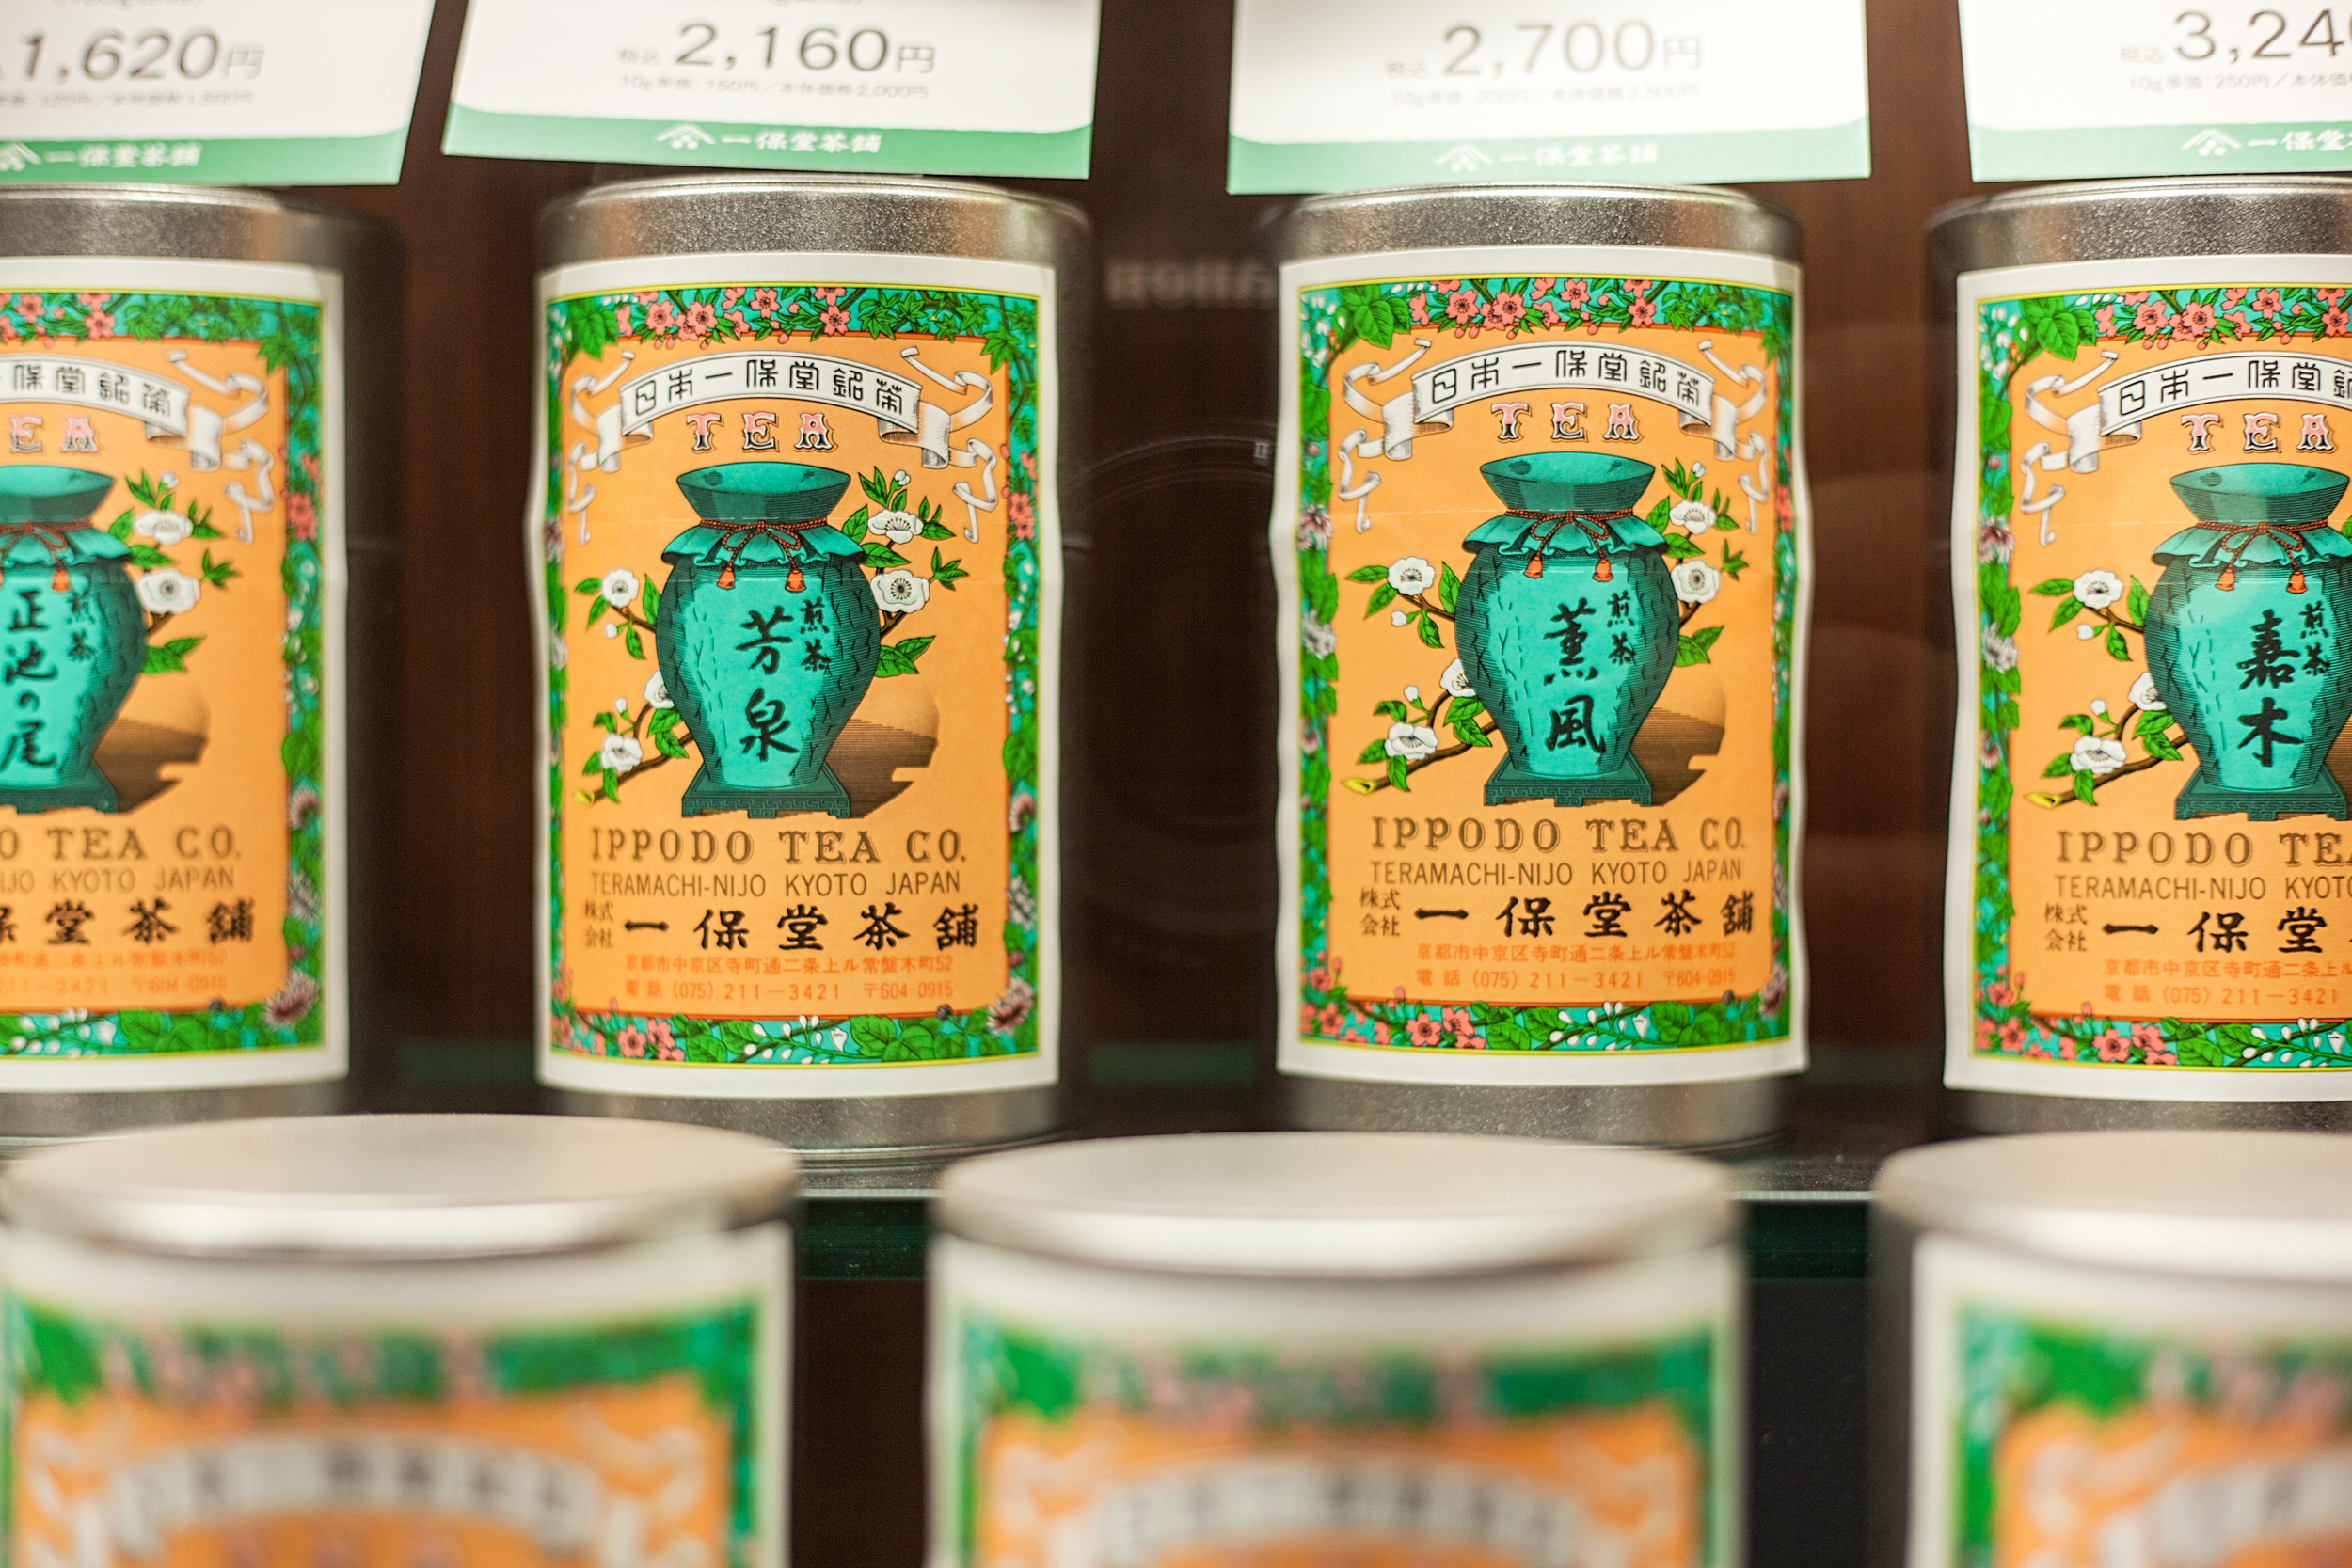 Ippodo Tea Co. in Kyoto